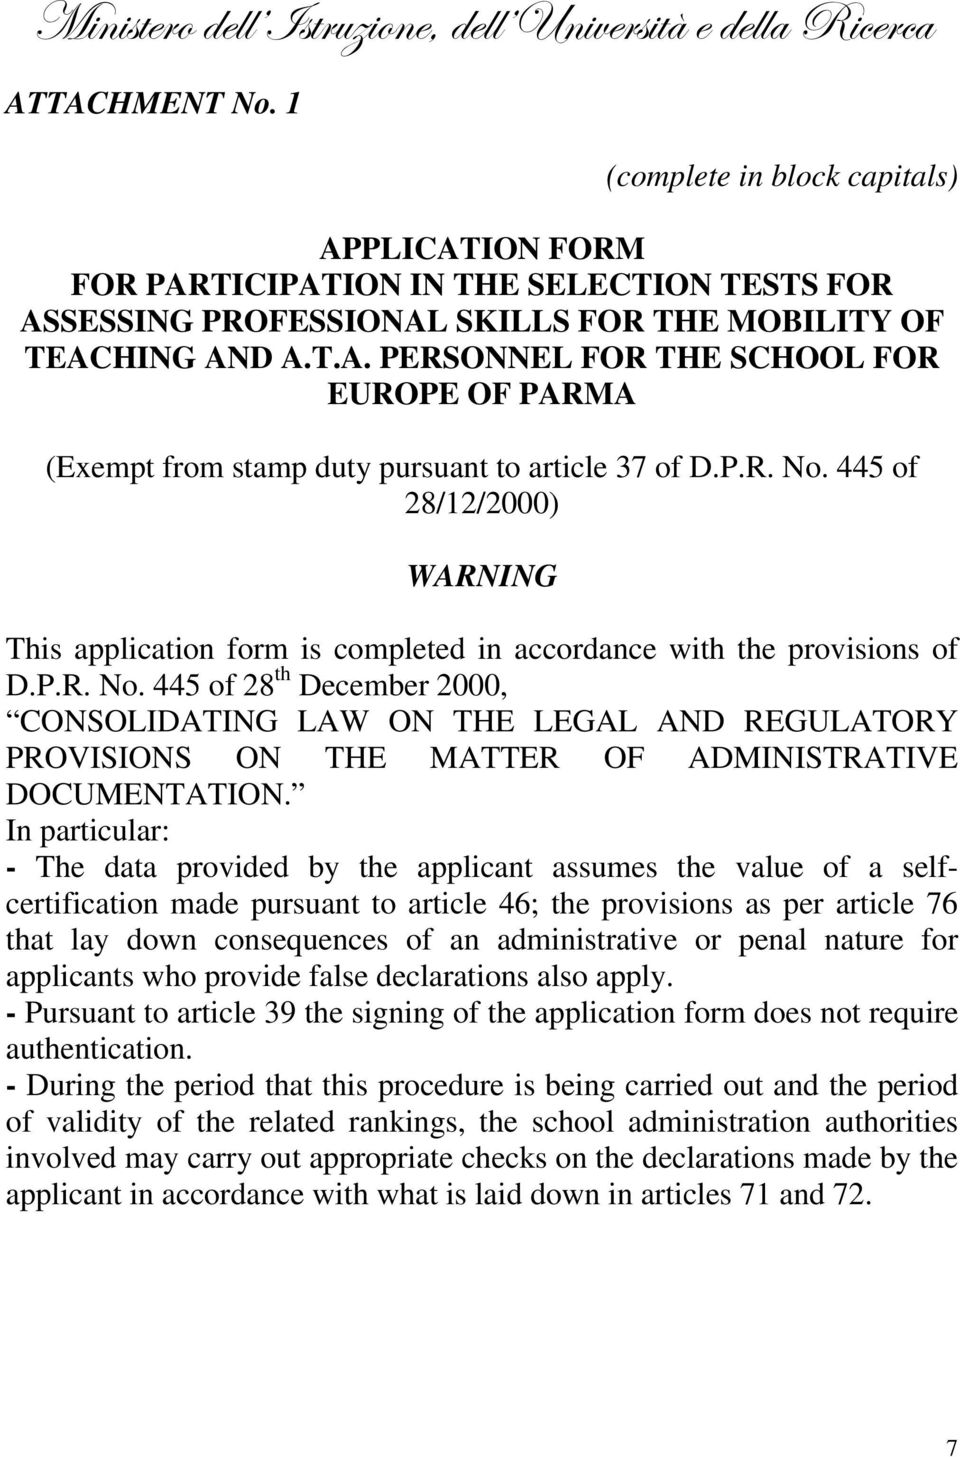 In particular: - The data provided by the applicant assumes the value of a selfcertification made pursuant to article 46; the provisions as per article 76 that lay down consequences of an